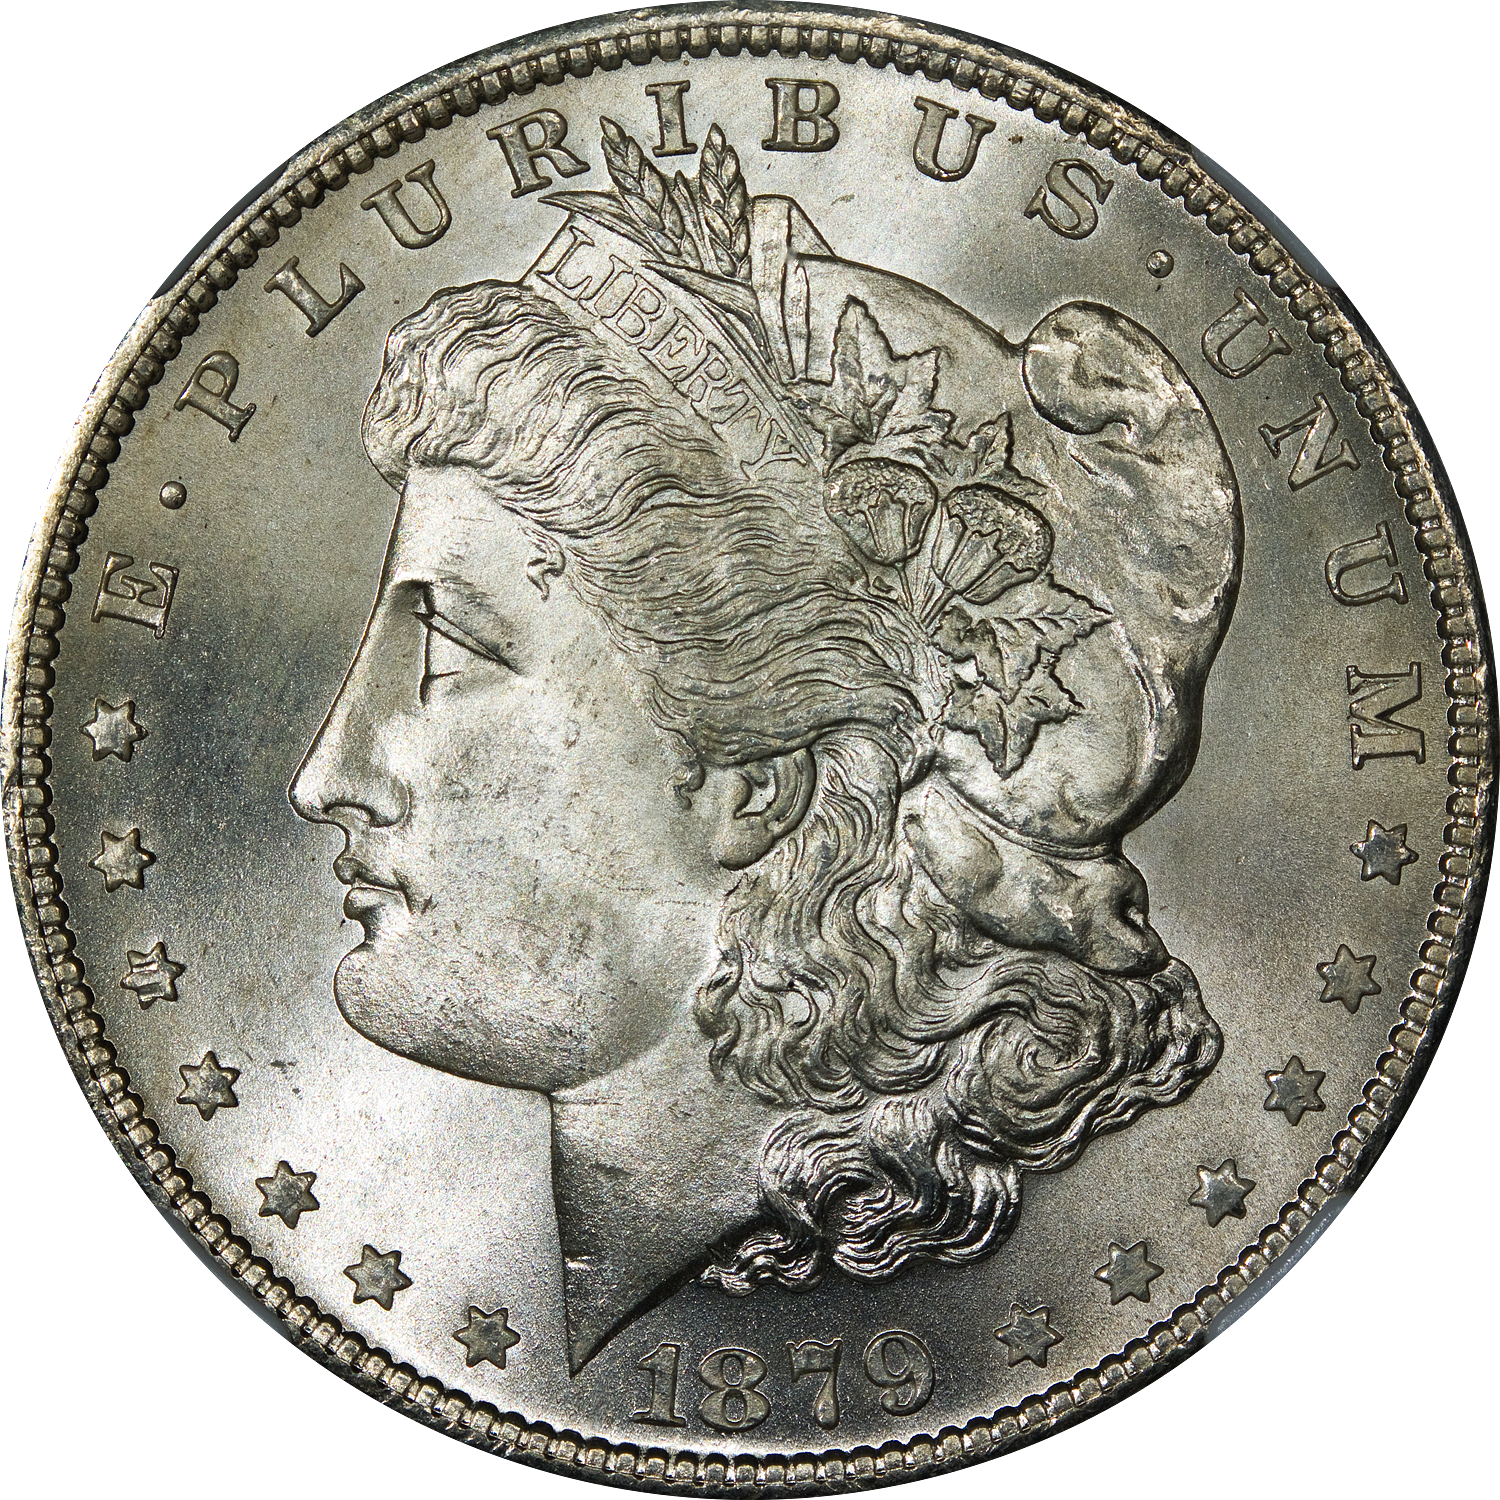 Morgan Silver Dollar minted 1878-1904